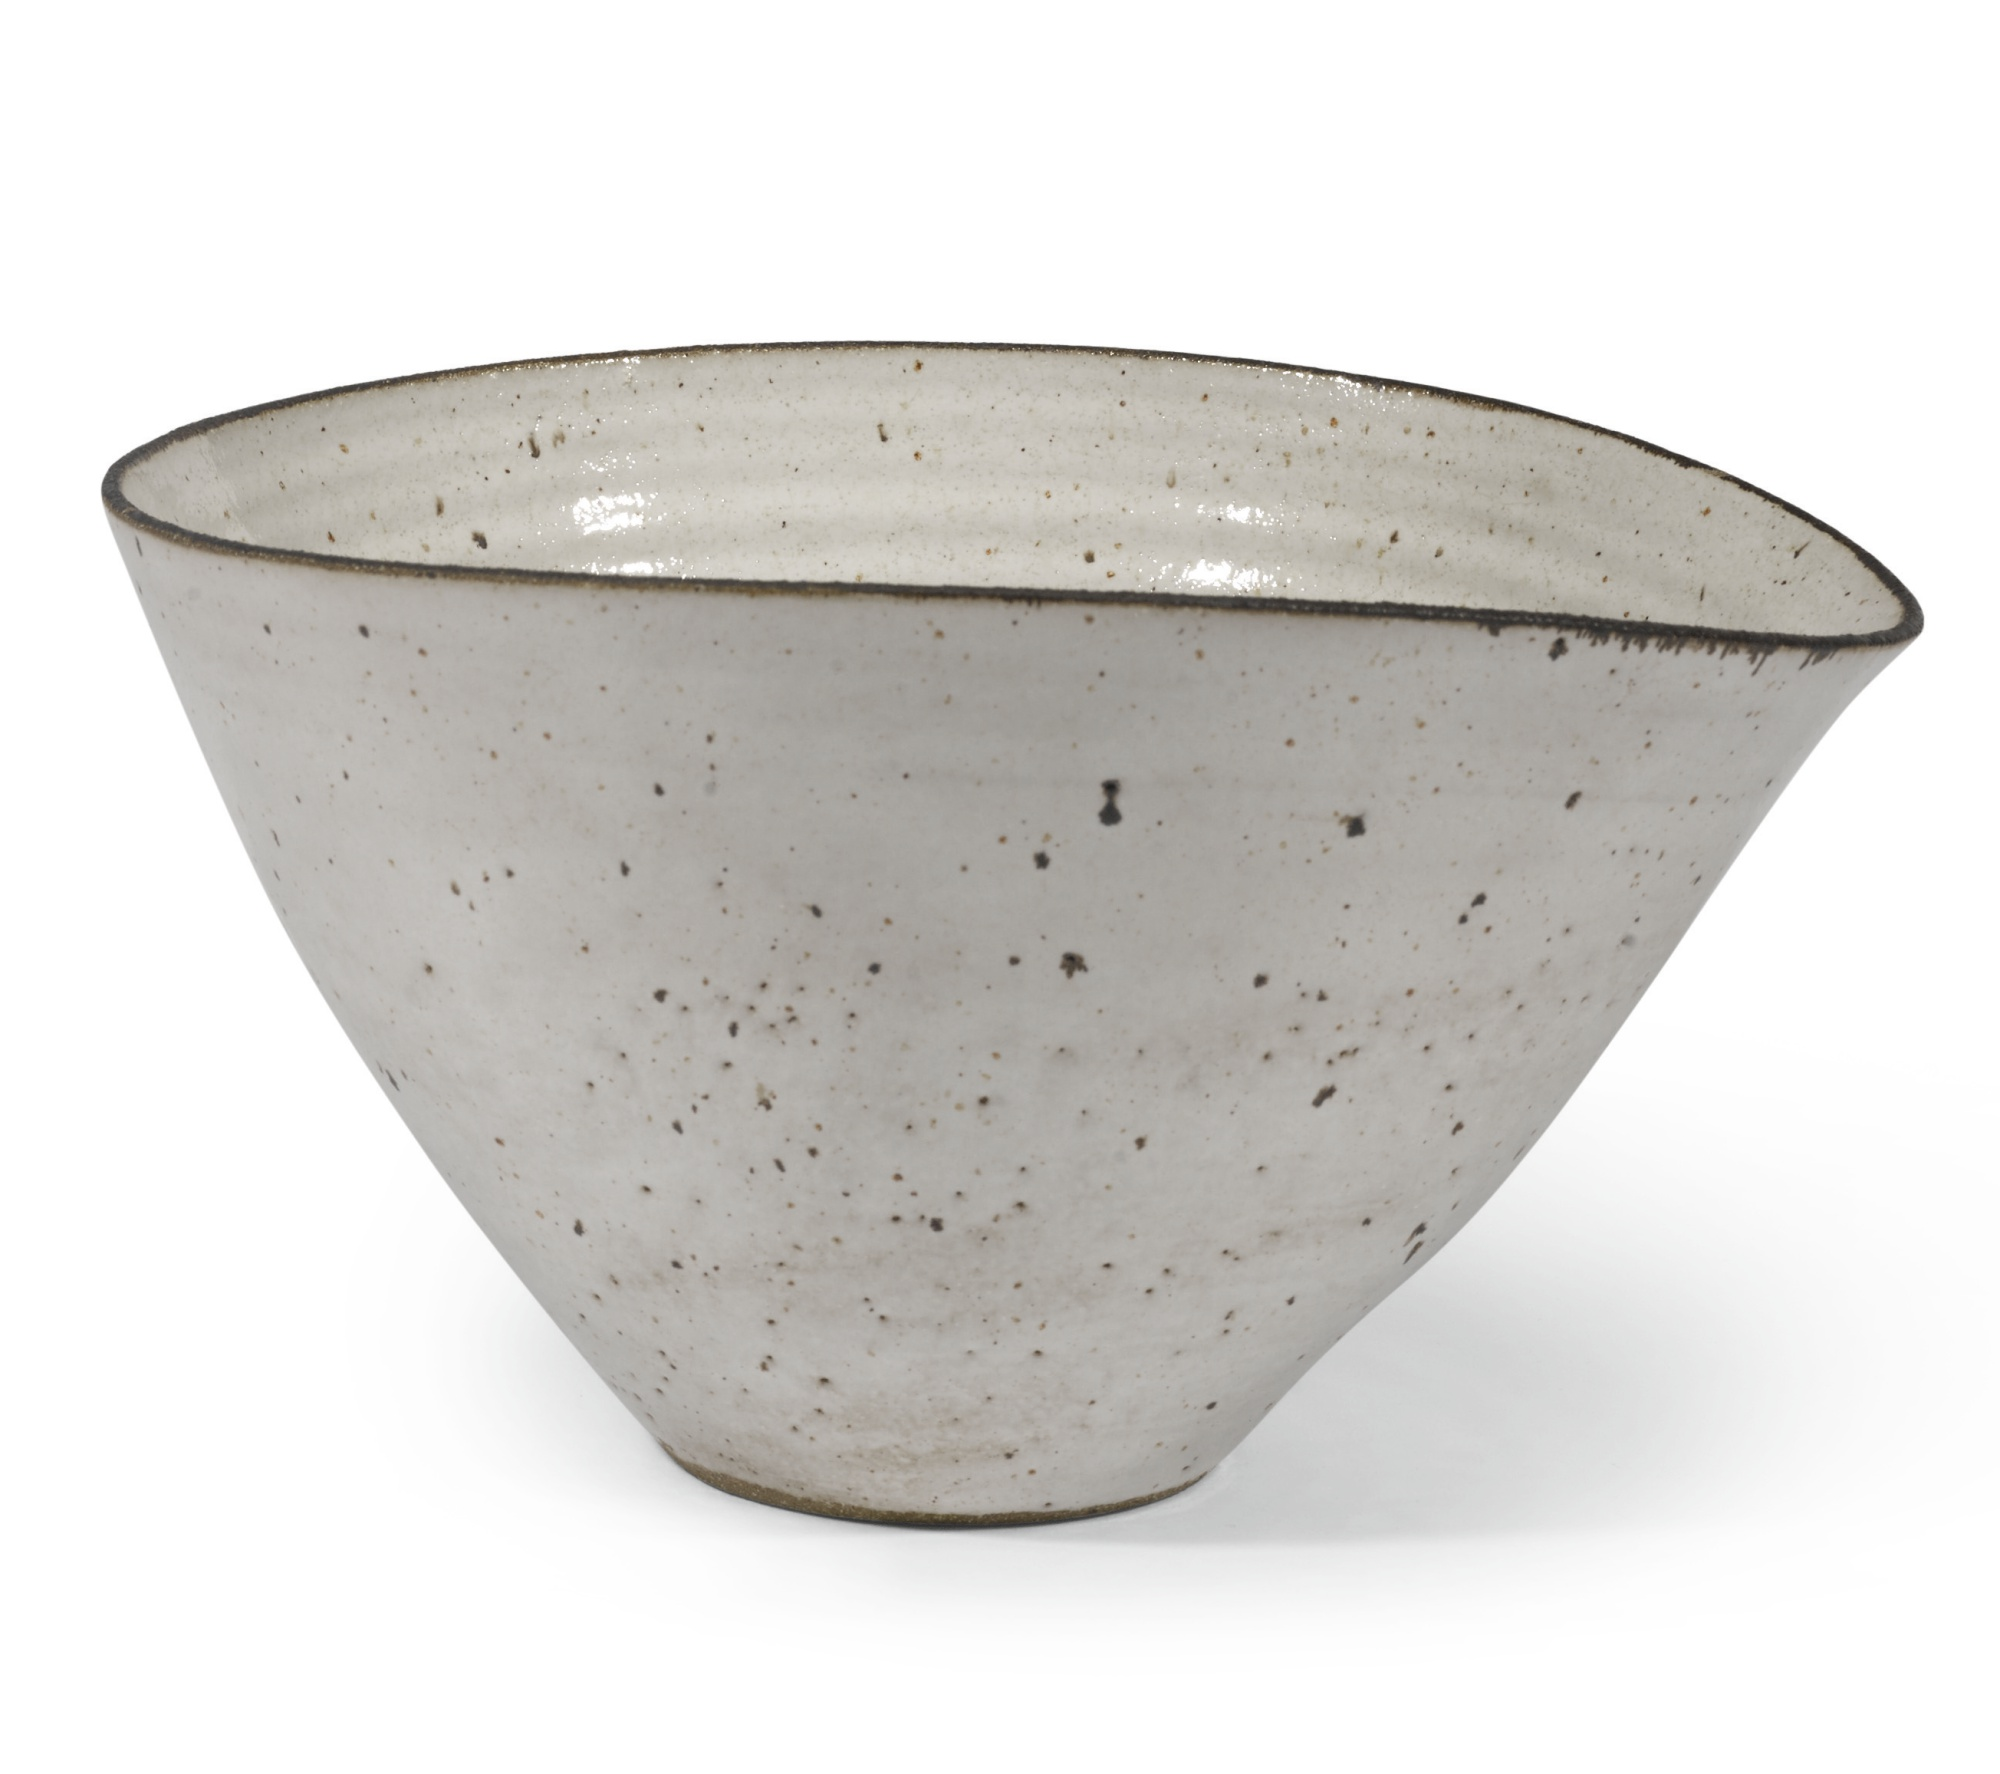 Lucie Rie-Large Squeezed Bowl With Pouring Lip-1950